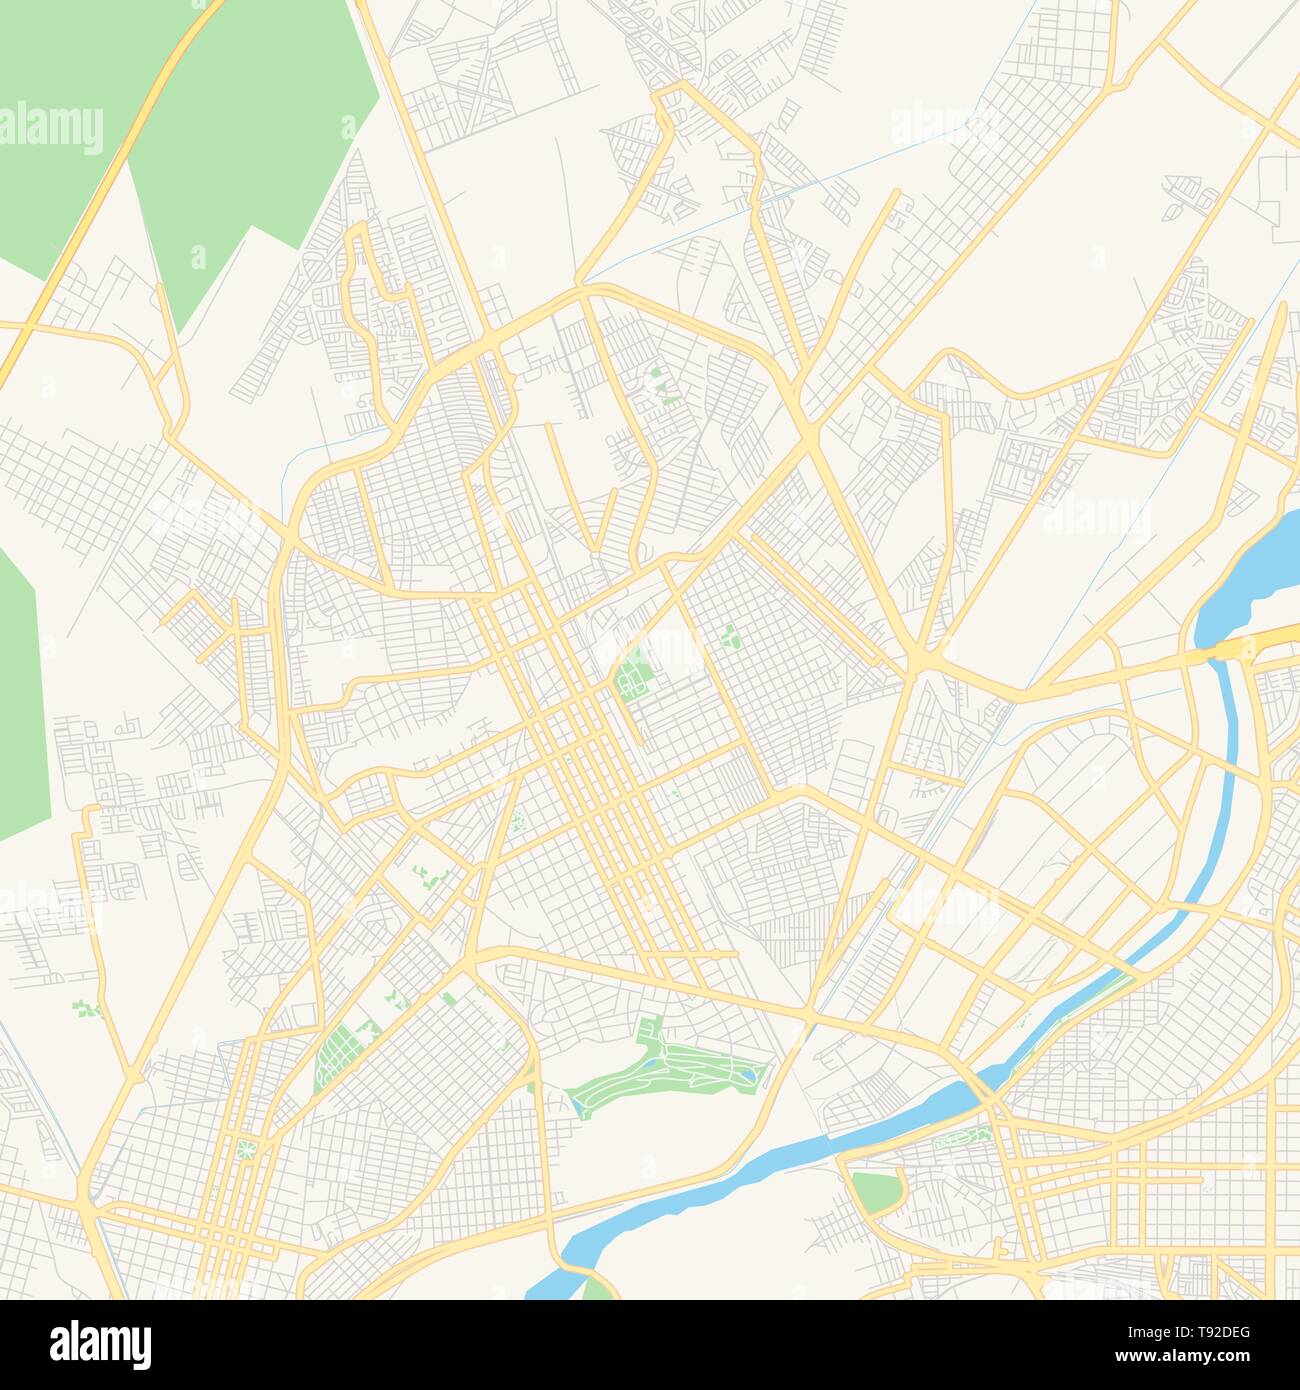 Map Of Durango Stock Photos & Map Of Durango Stock Images - Alamy Durango Map on